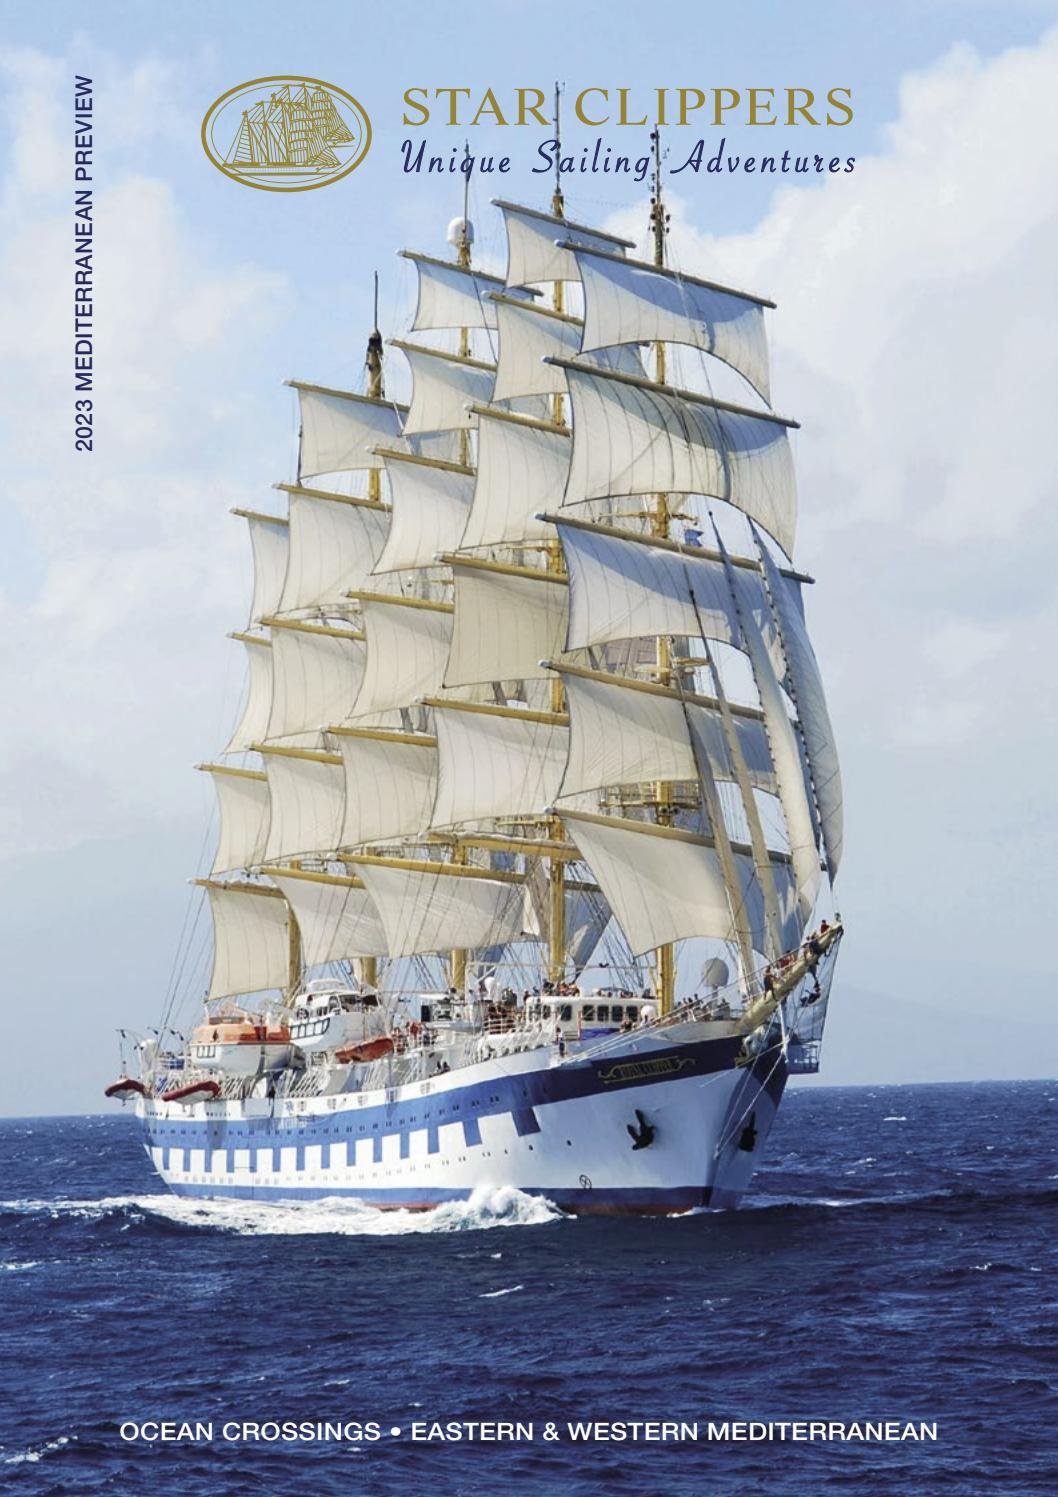 Star Clippers 2023 Mediterranean Preview